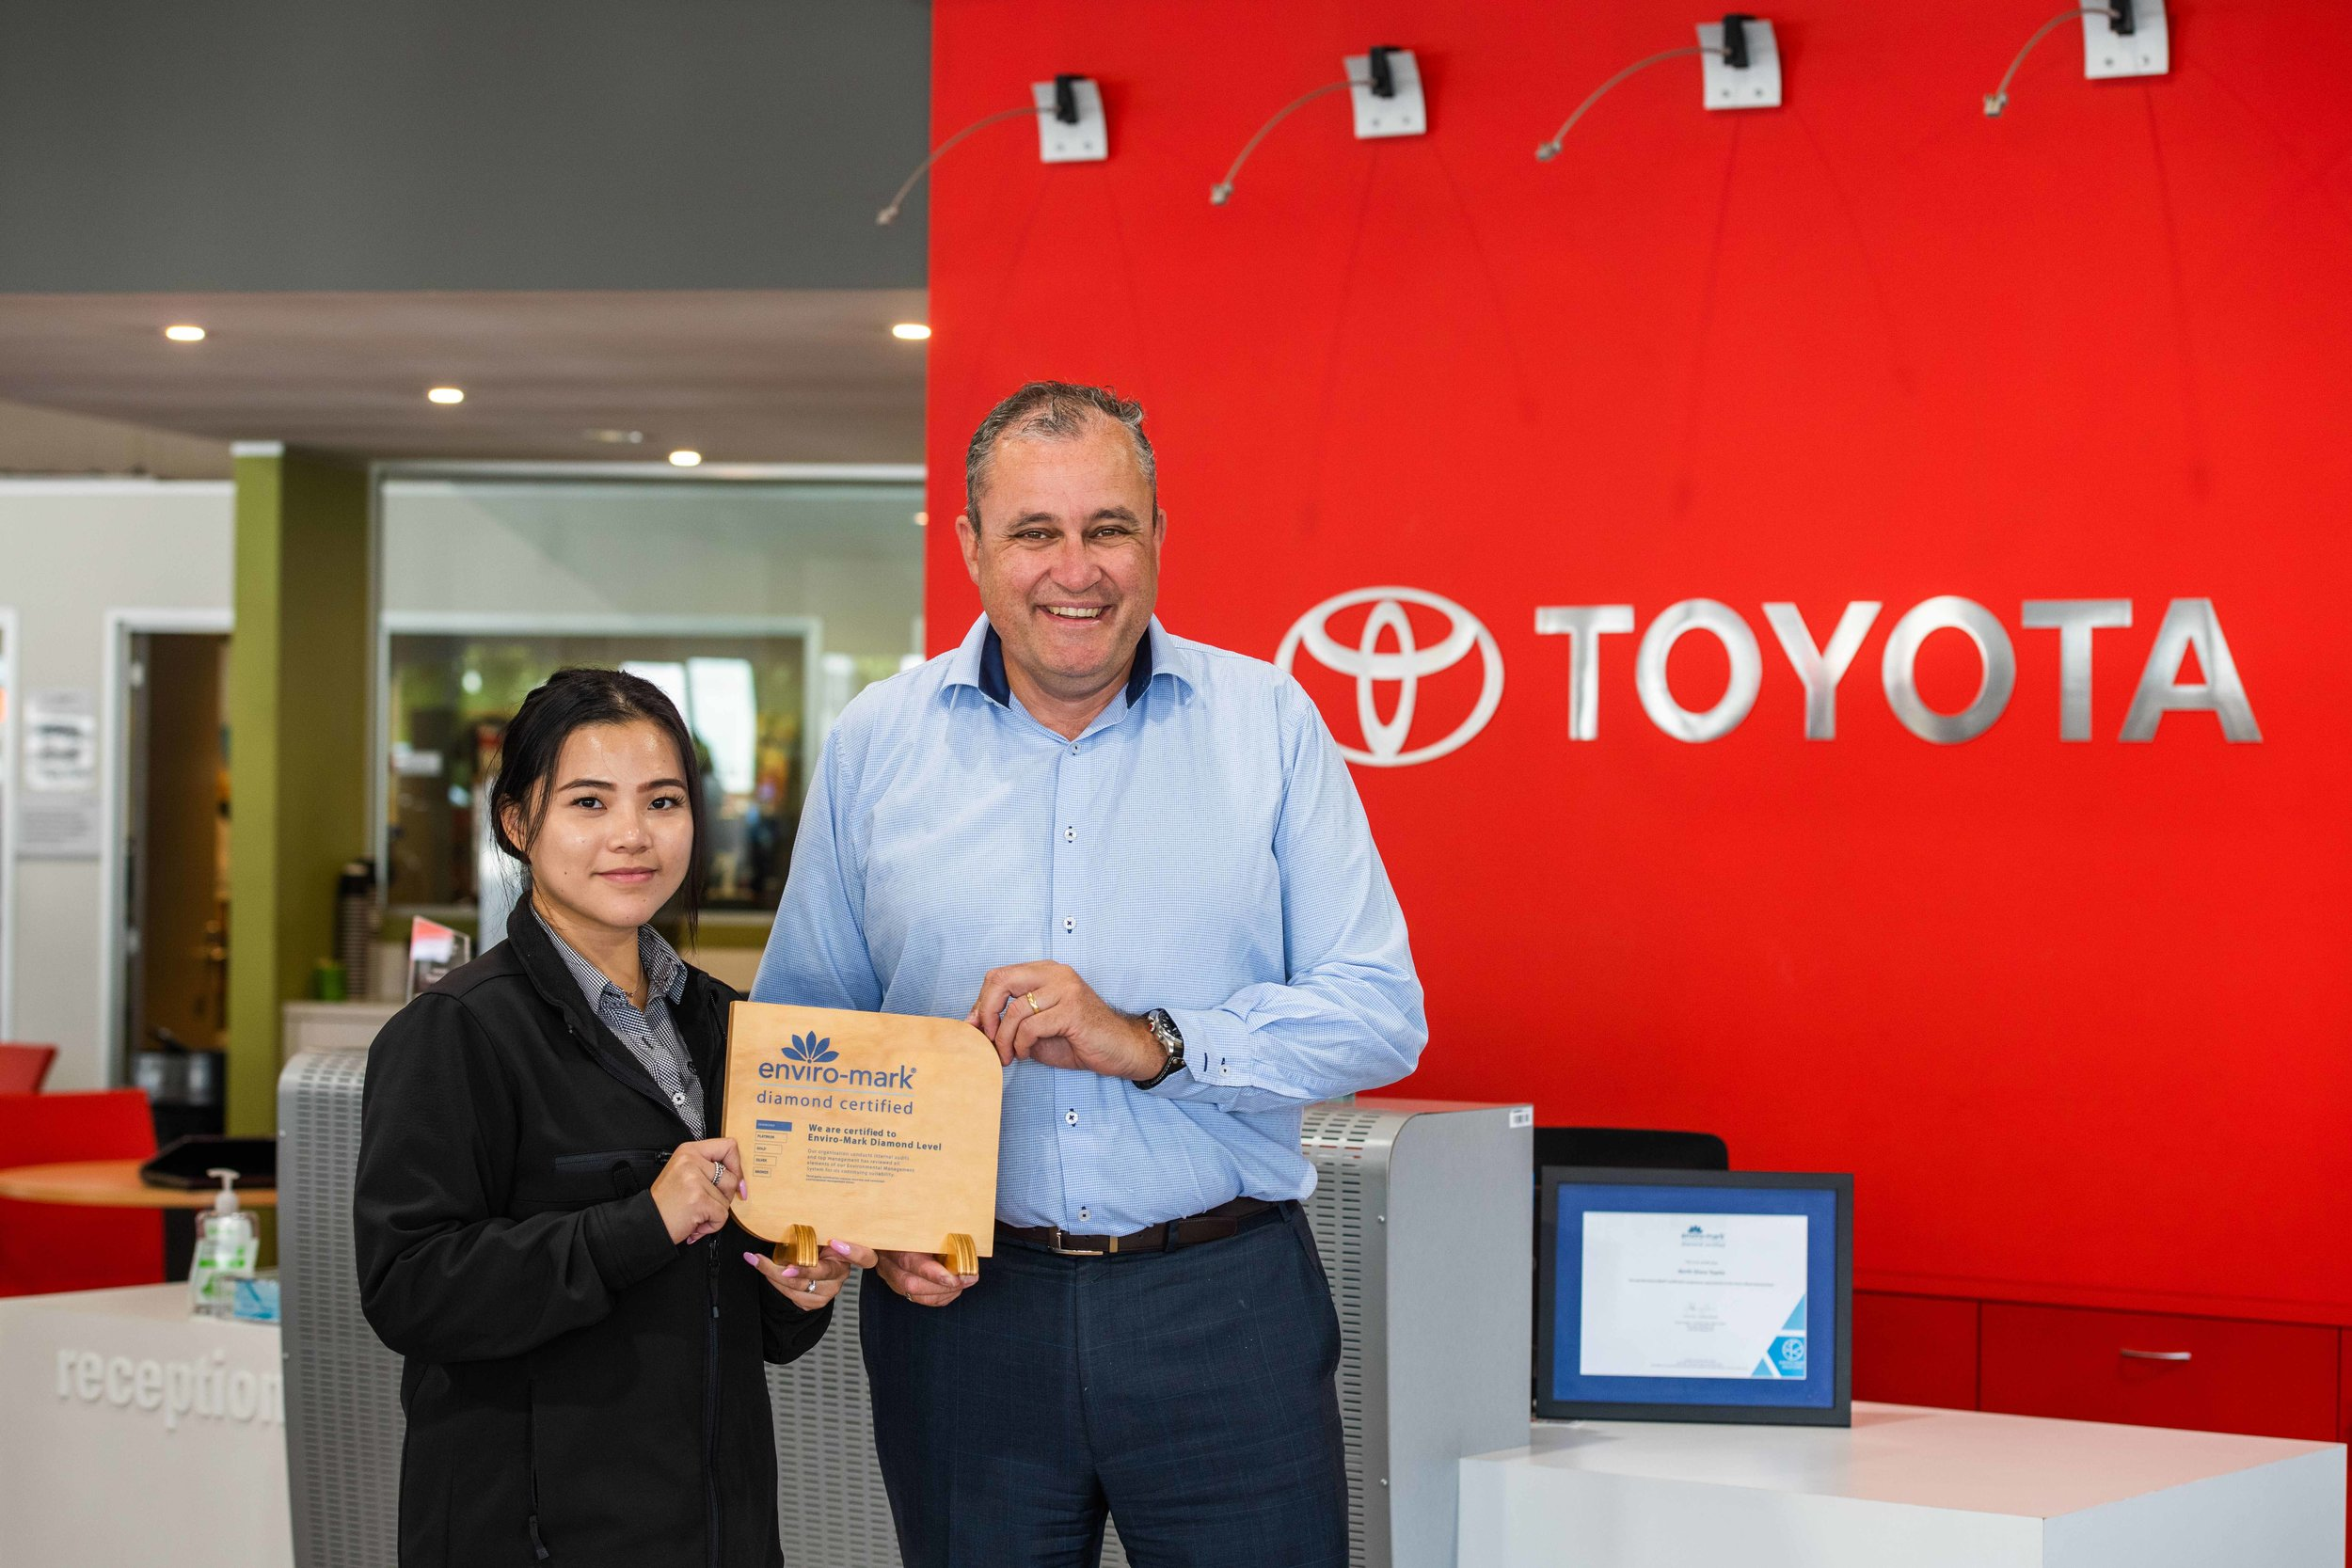 IMAGE_Nicole Choy and Mark Jago, CEO of North Shore Toyota with their Diamond certified Enviromark plaque .jpg